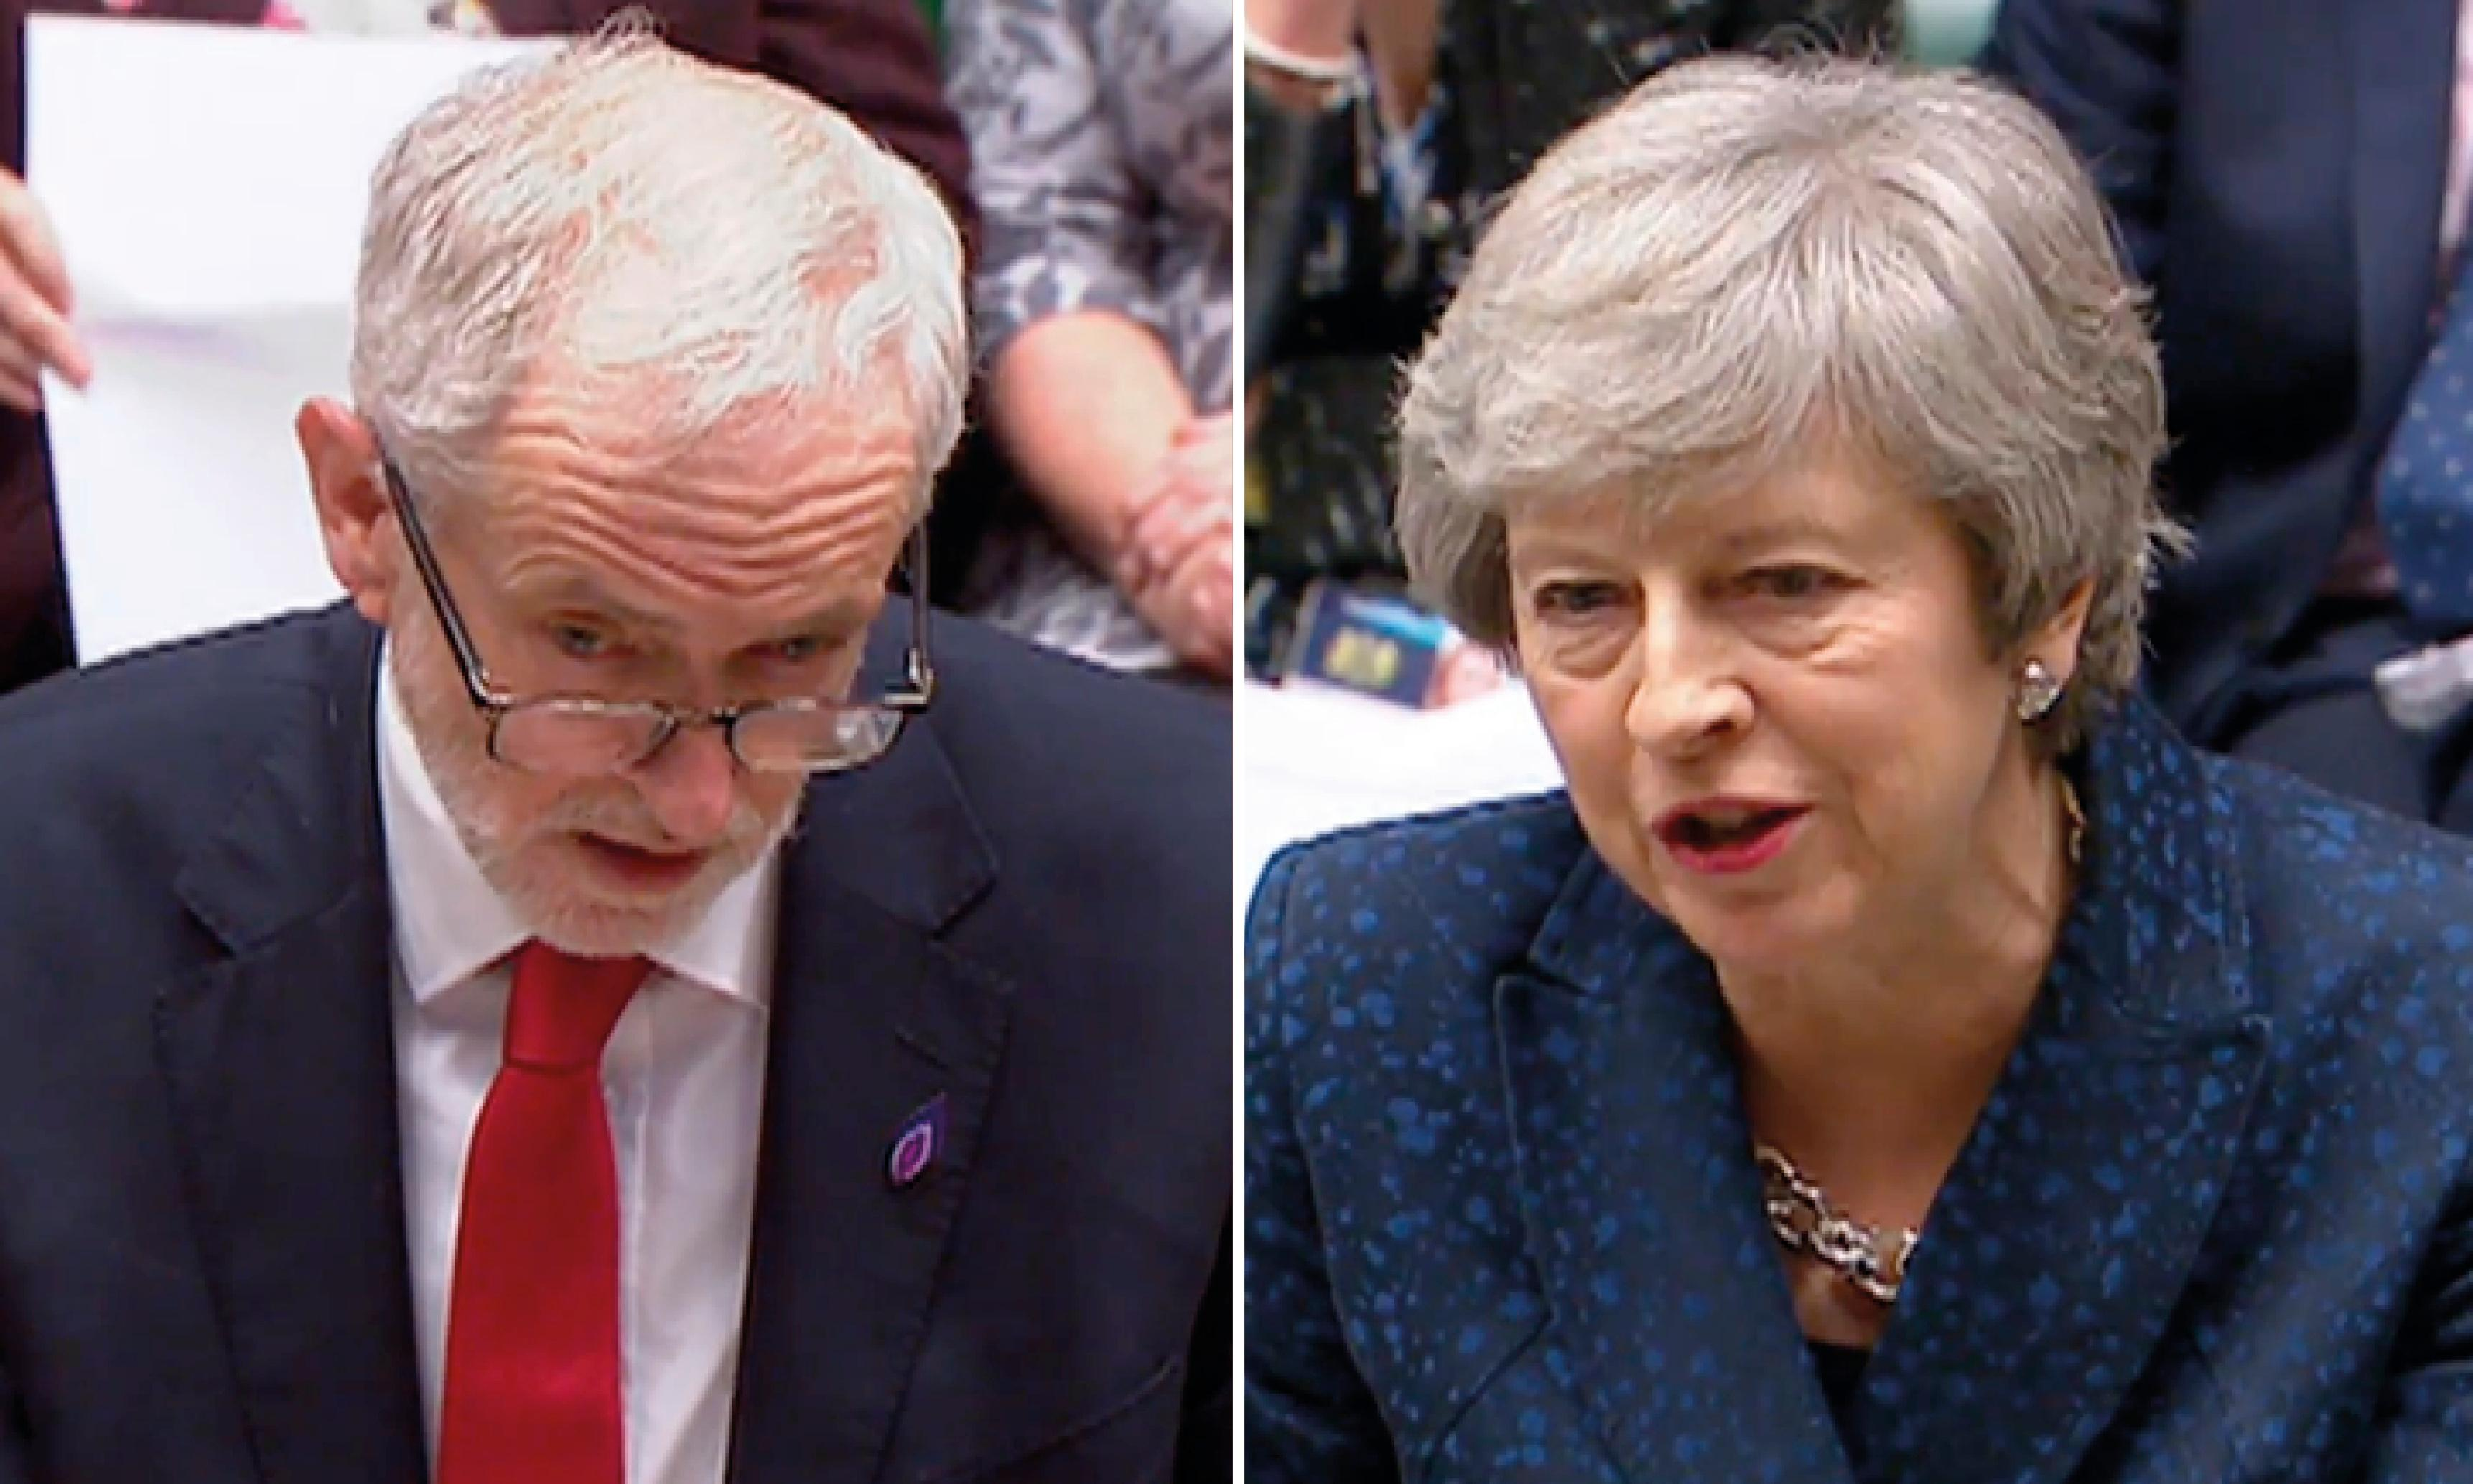 PMQs verdict: Corbyn leaves May sounding defensive on Brexit